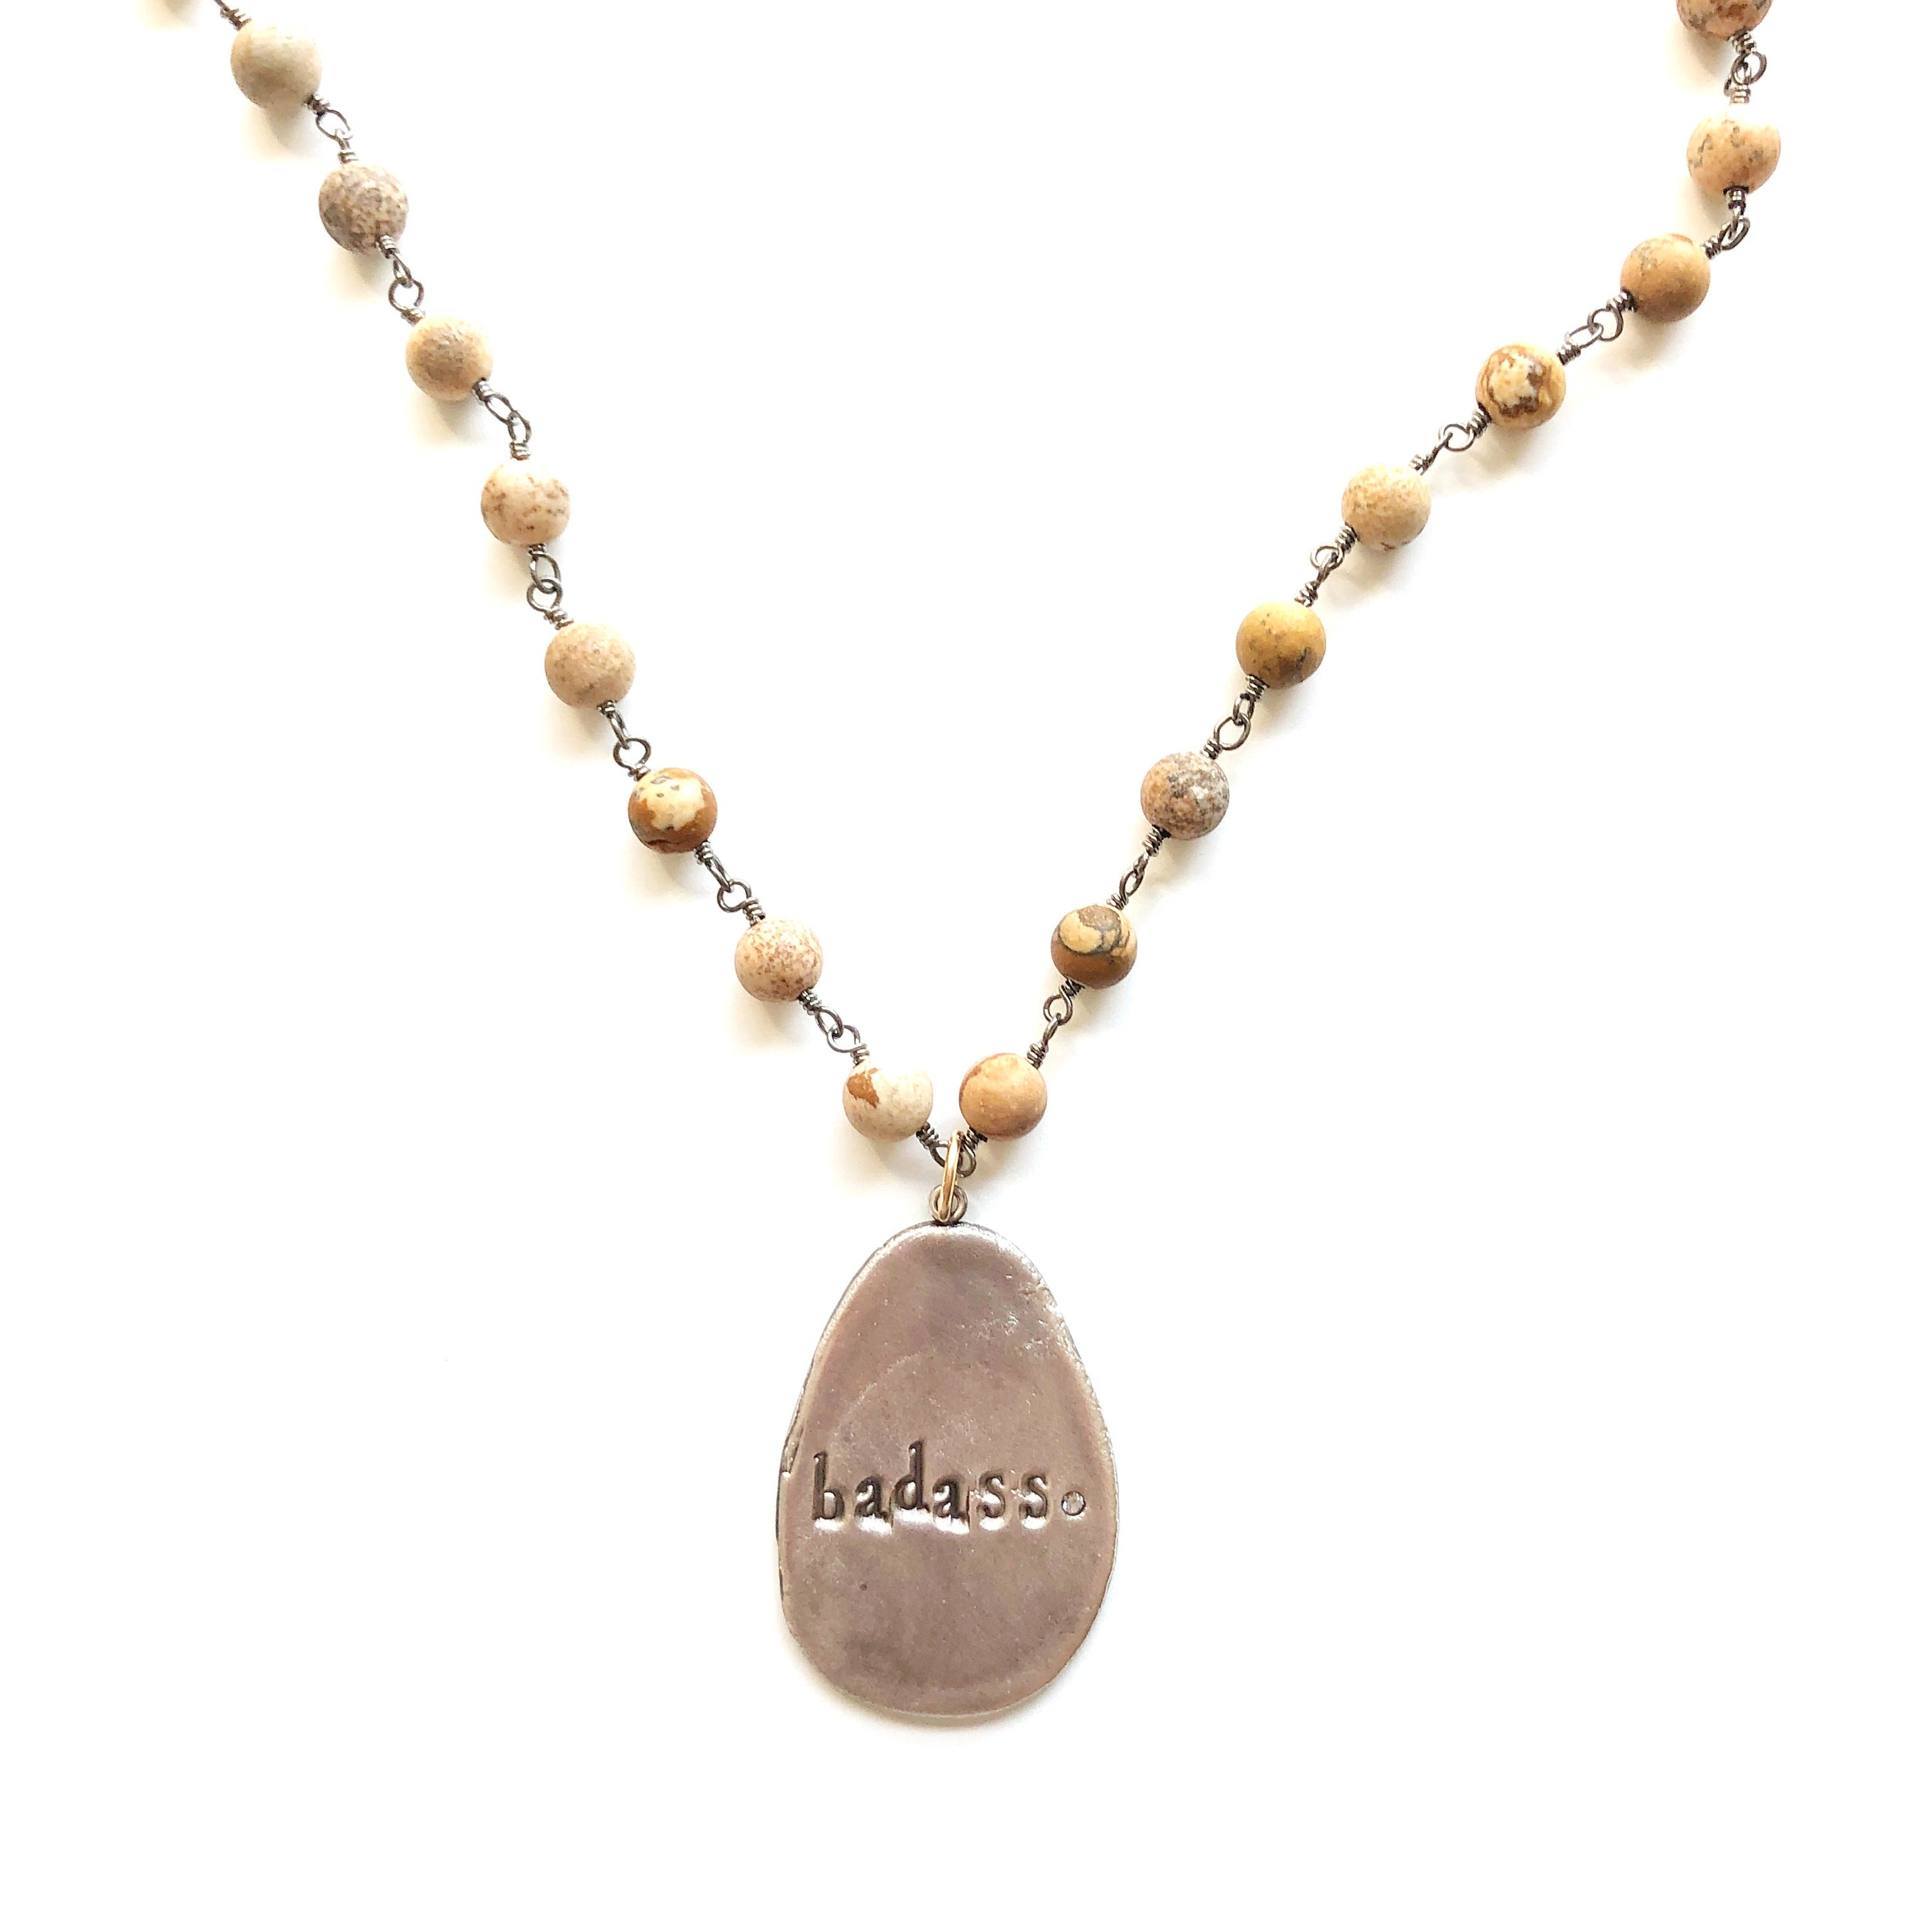 Badass Charm Necklace with Jasper Bead Chain MAS Designs Jewelry